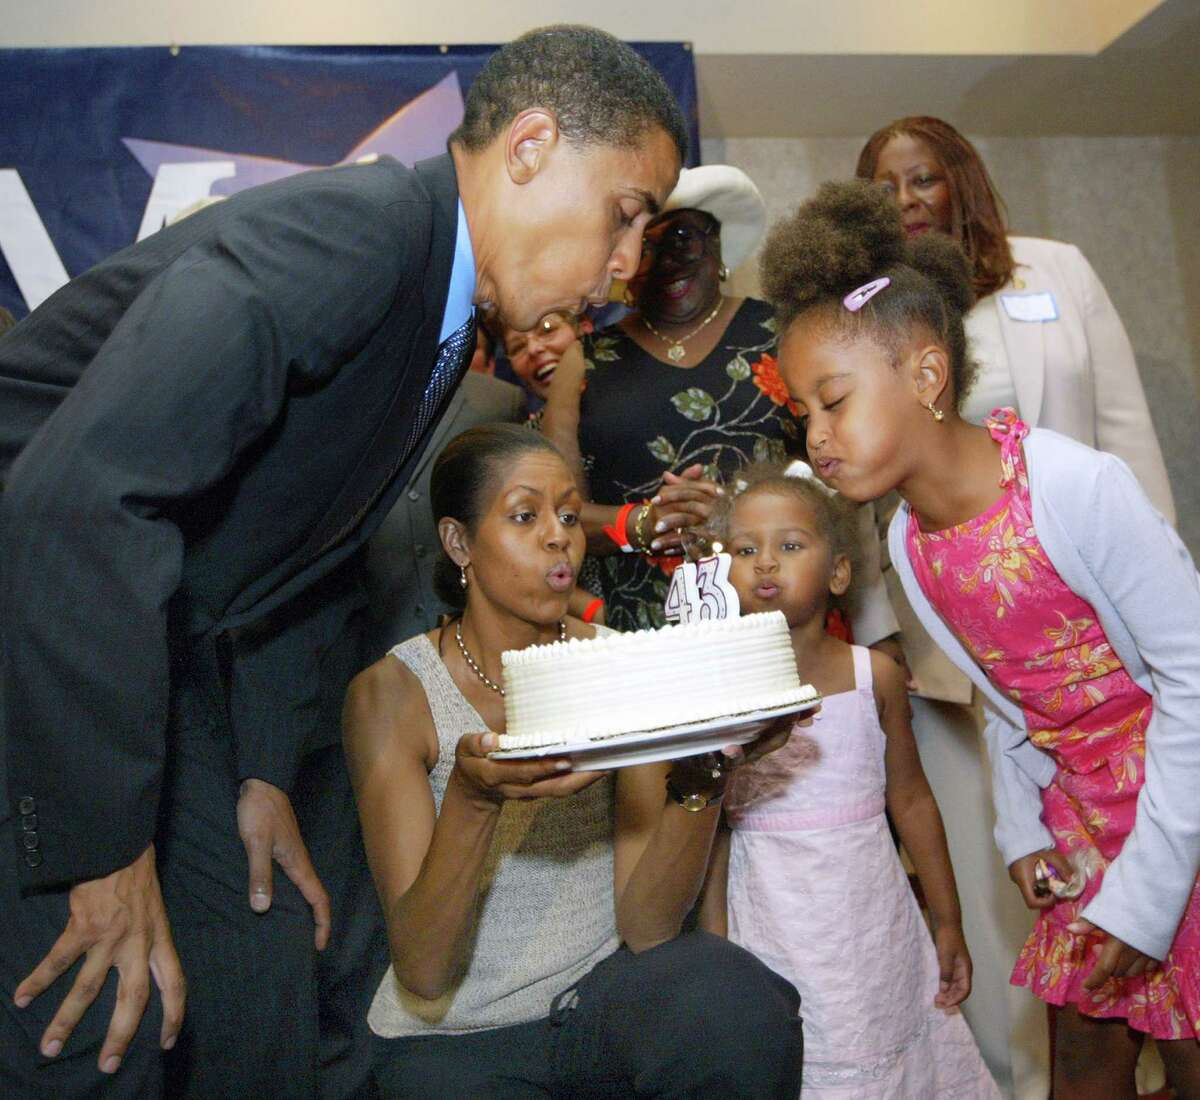 Then Senate candidate Barack Obama, D-Ill., blows out candles on his birthday cake at his 43rd birthday celebration with Michelle, who is holding the cake, and daughters Sasha and Malia during a fundraiser Aug. 4, 2004 in Matteson, Ill.